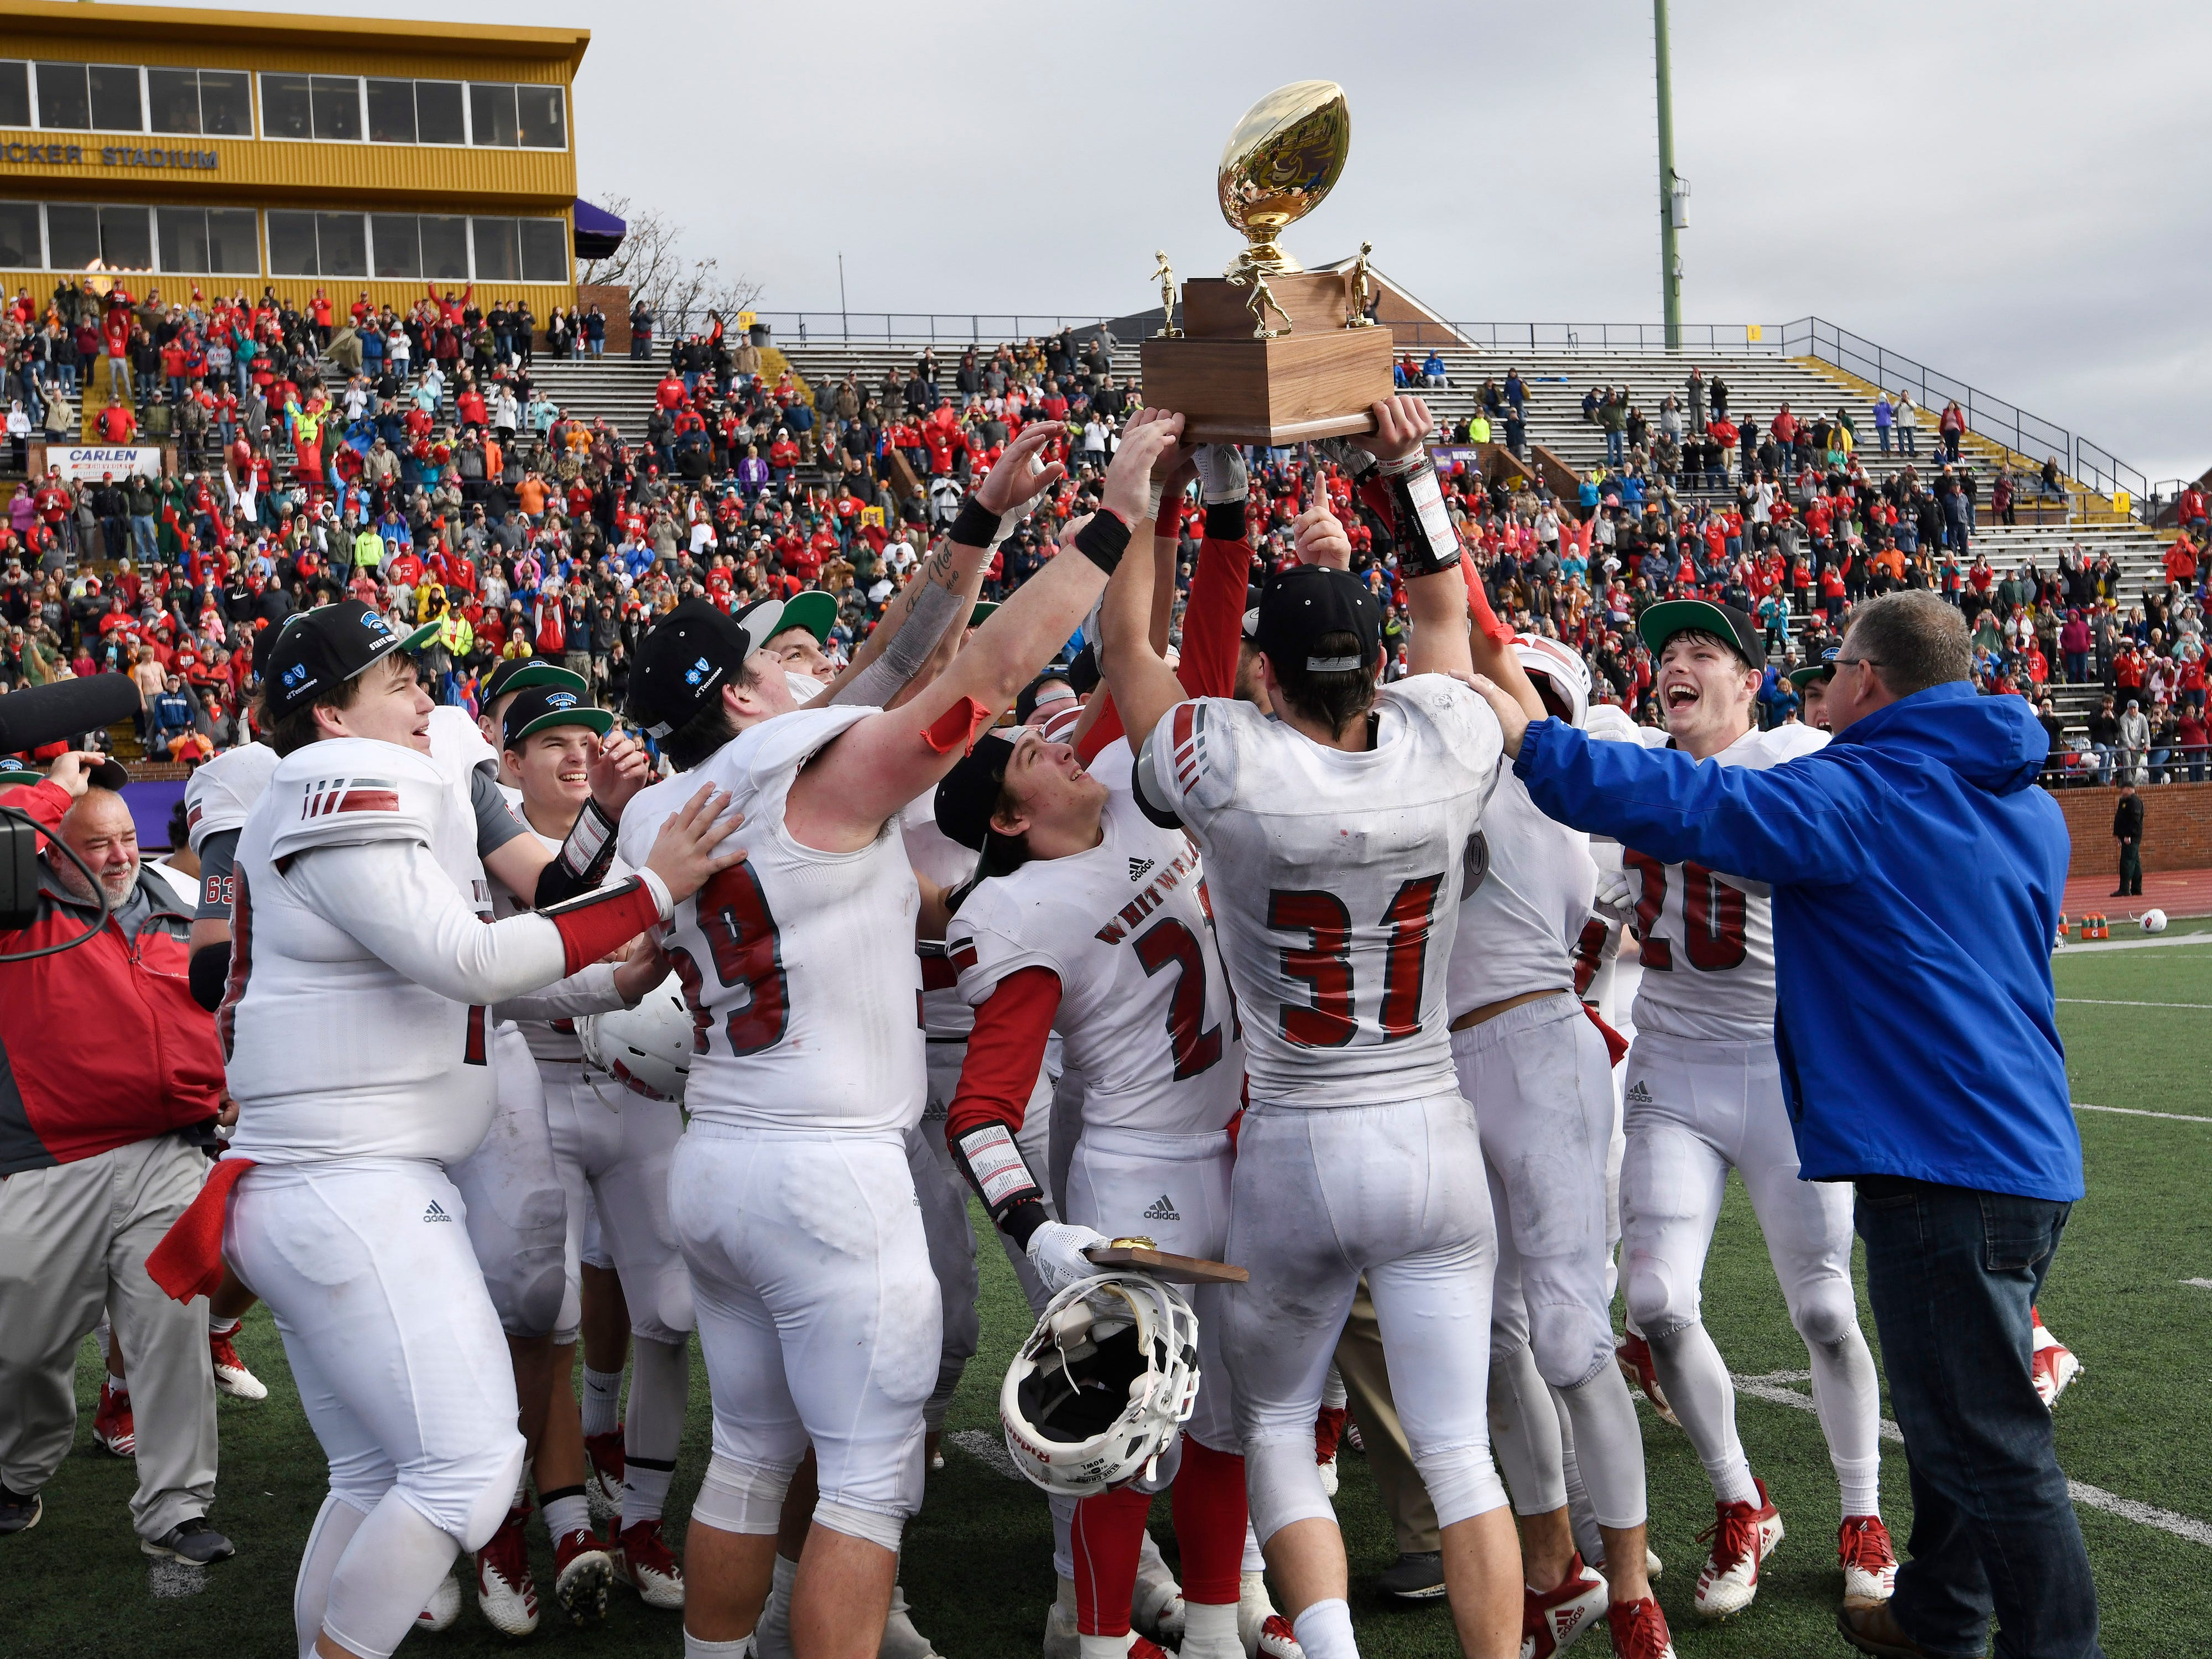 Whitwell players celebrate with the championship trophy at the Class I-A BlueCross Bowl state championship at Tennessee Tech's Tucker Stadium in Cookeville, Tenn., on Saturday, Dec. 1, 2018.